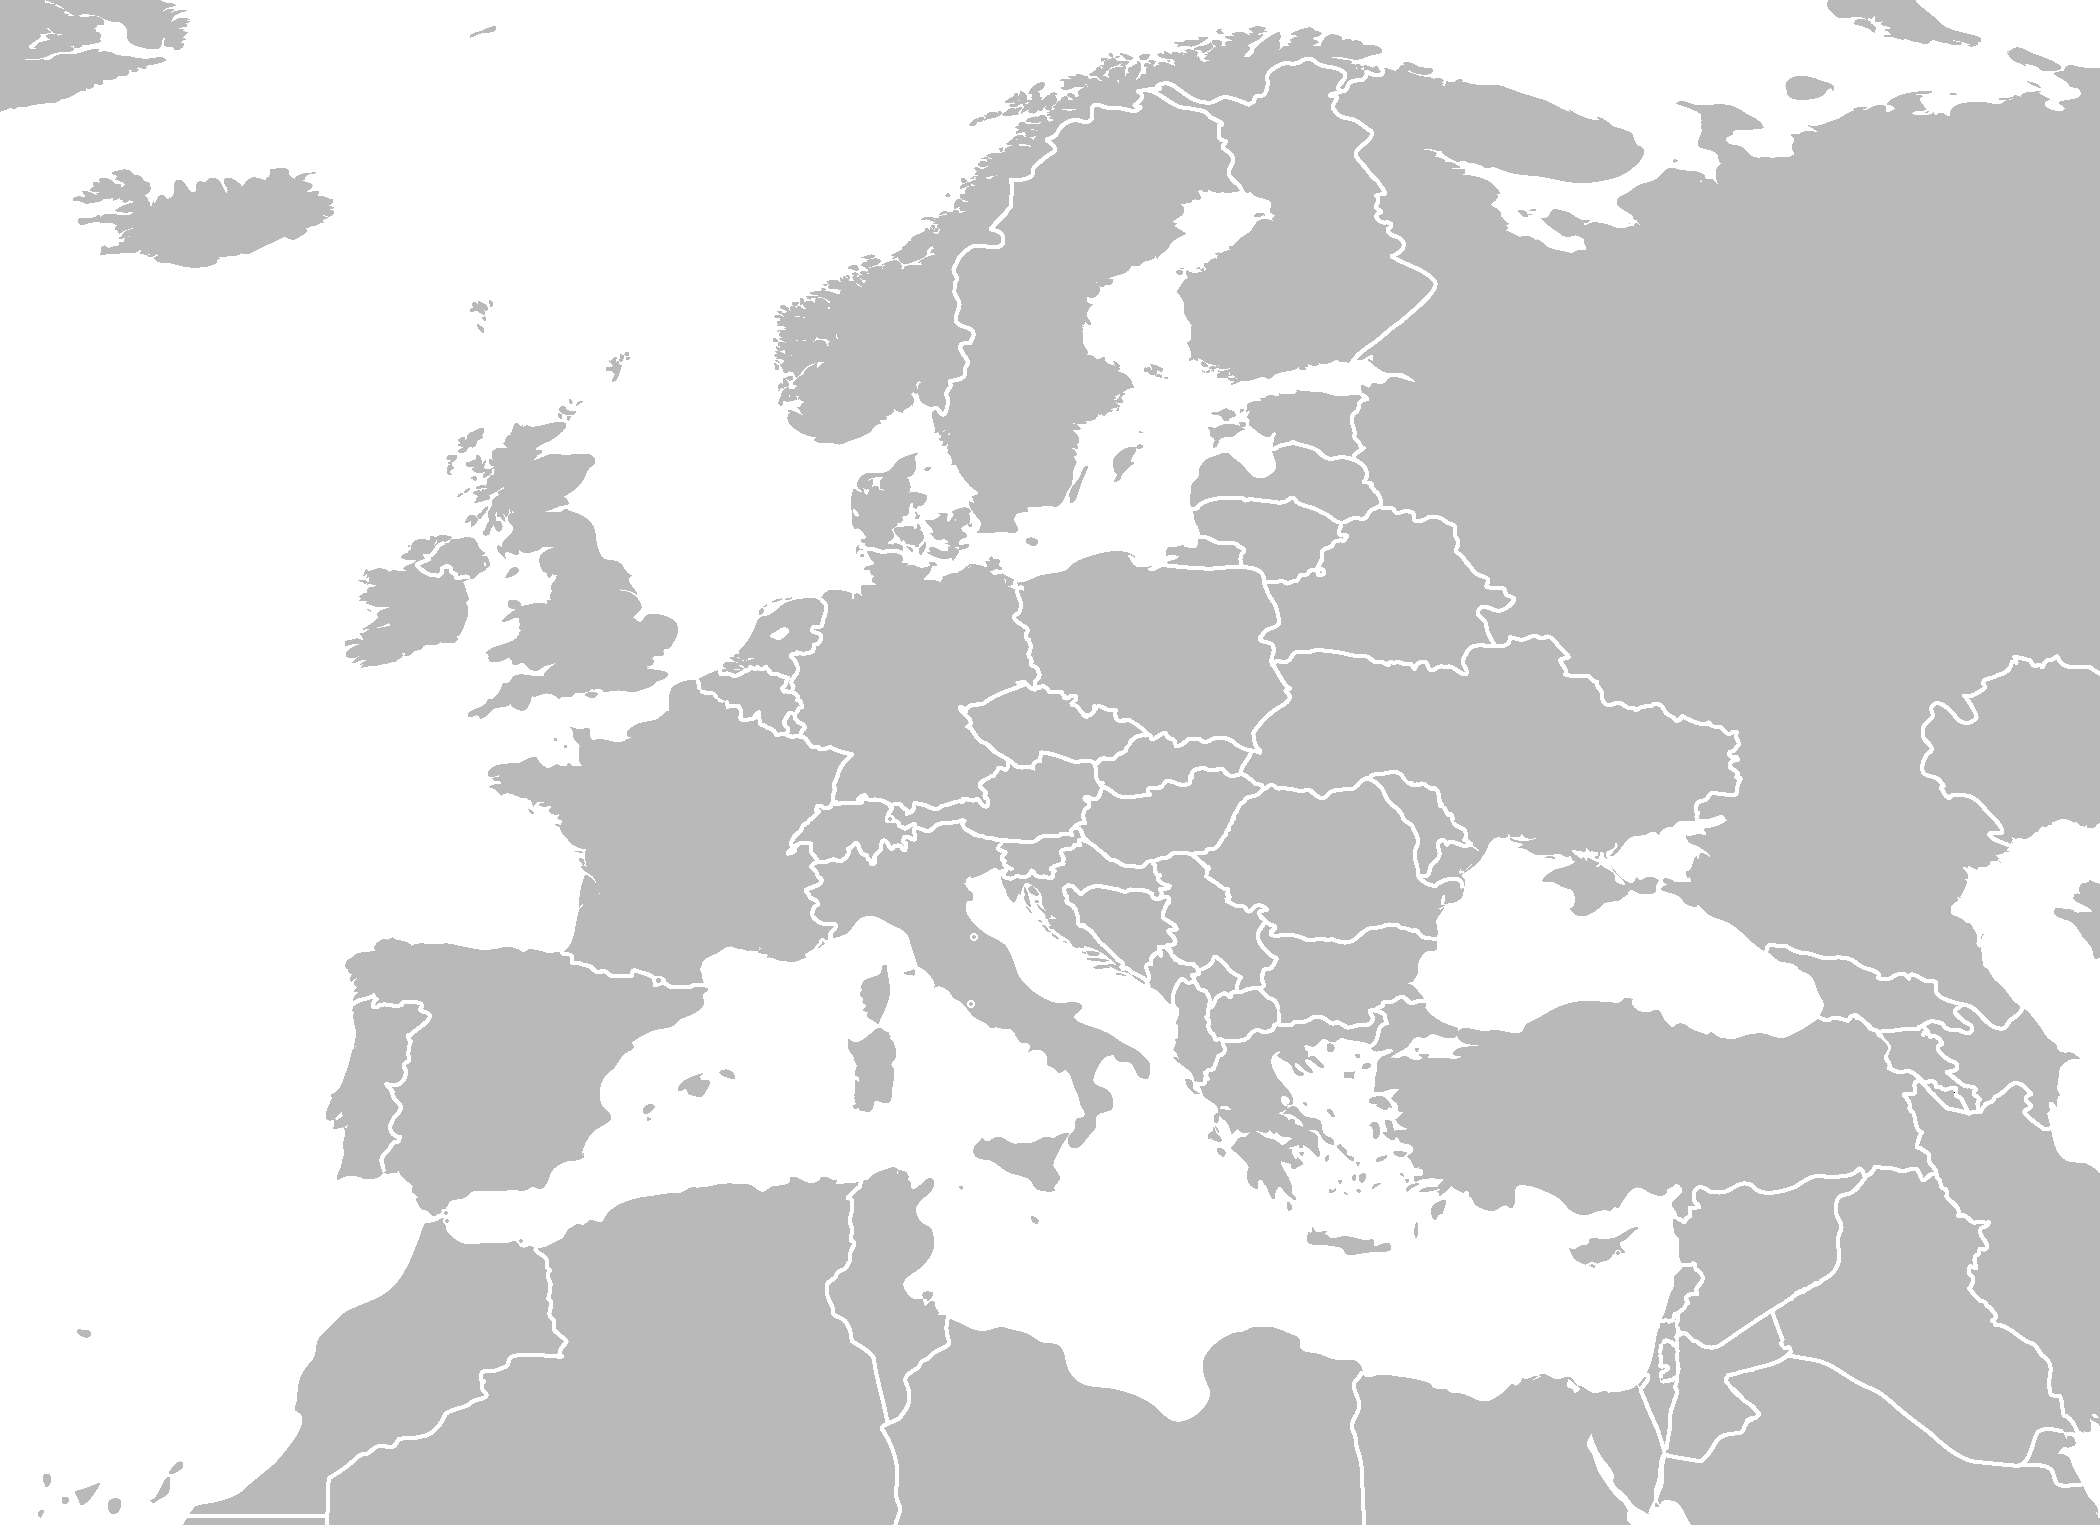 Blank Map Europe Noeyesneed - Blank map of the united states wikipedia